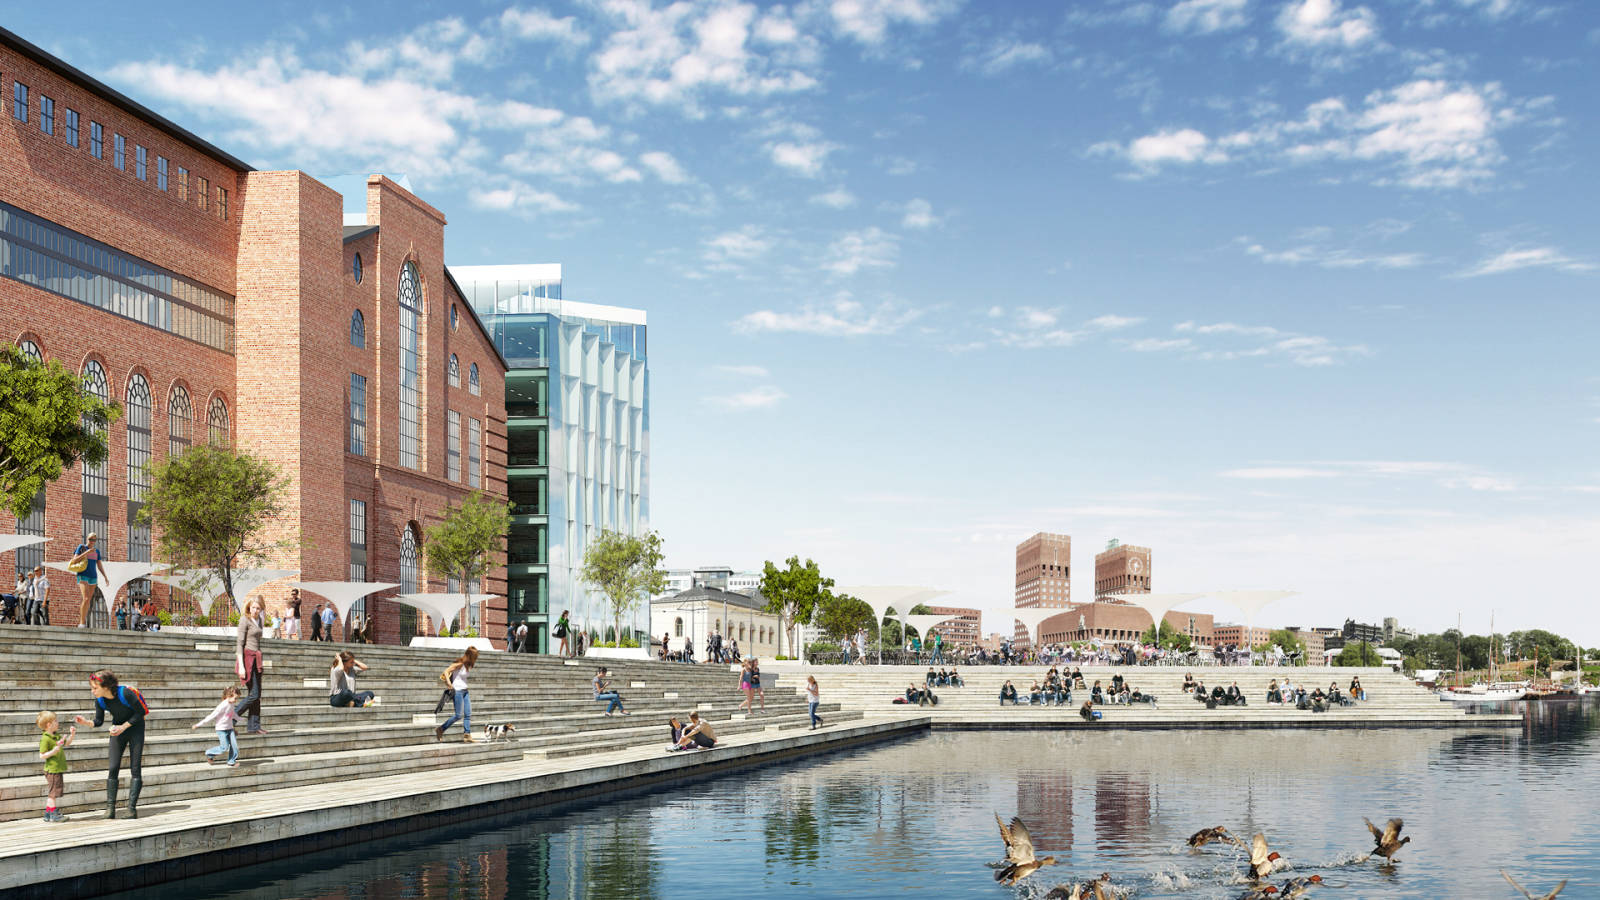 FREE WATERFRONT - Aker Brygge Masterplan - SPOL Architects